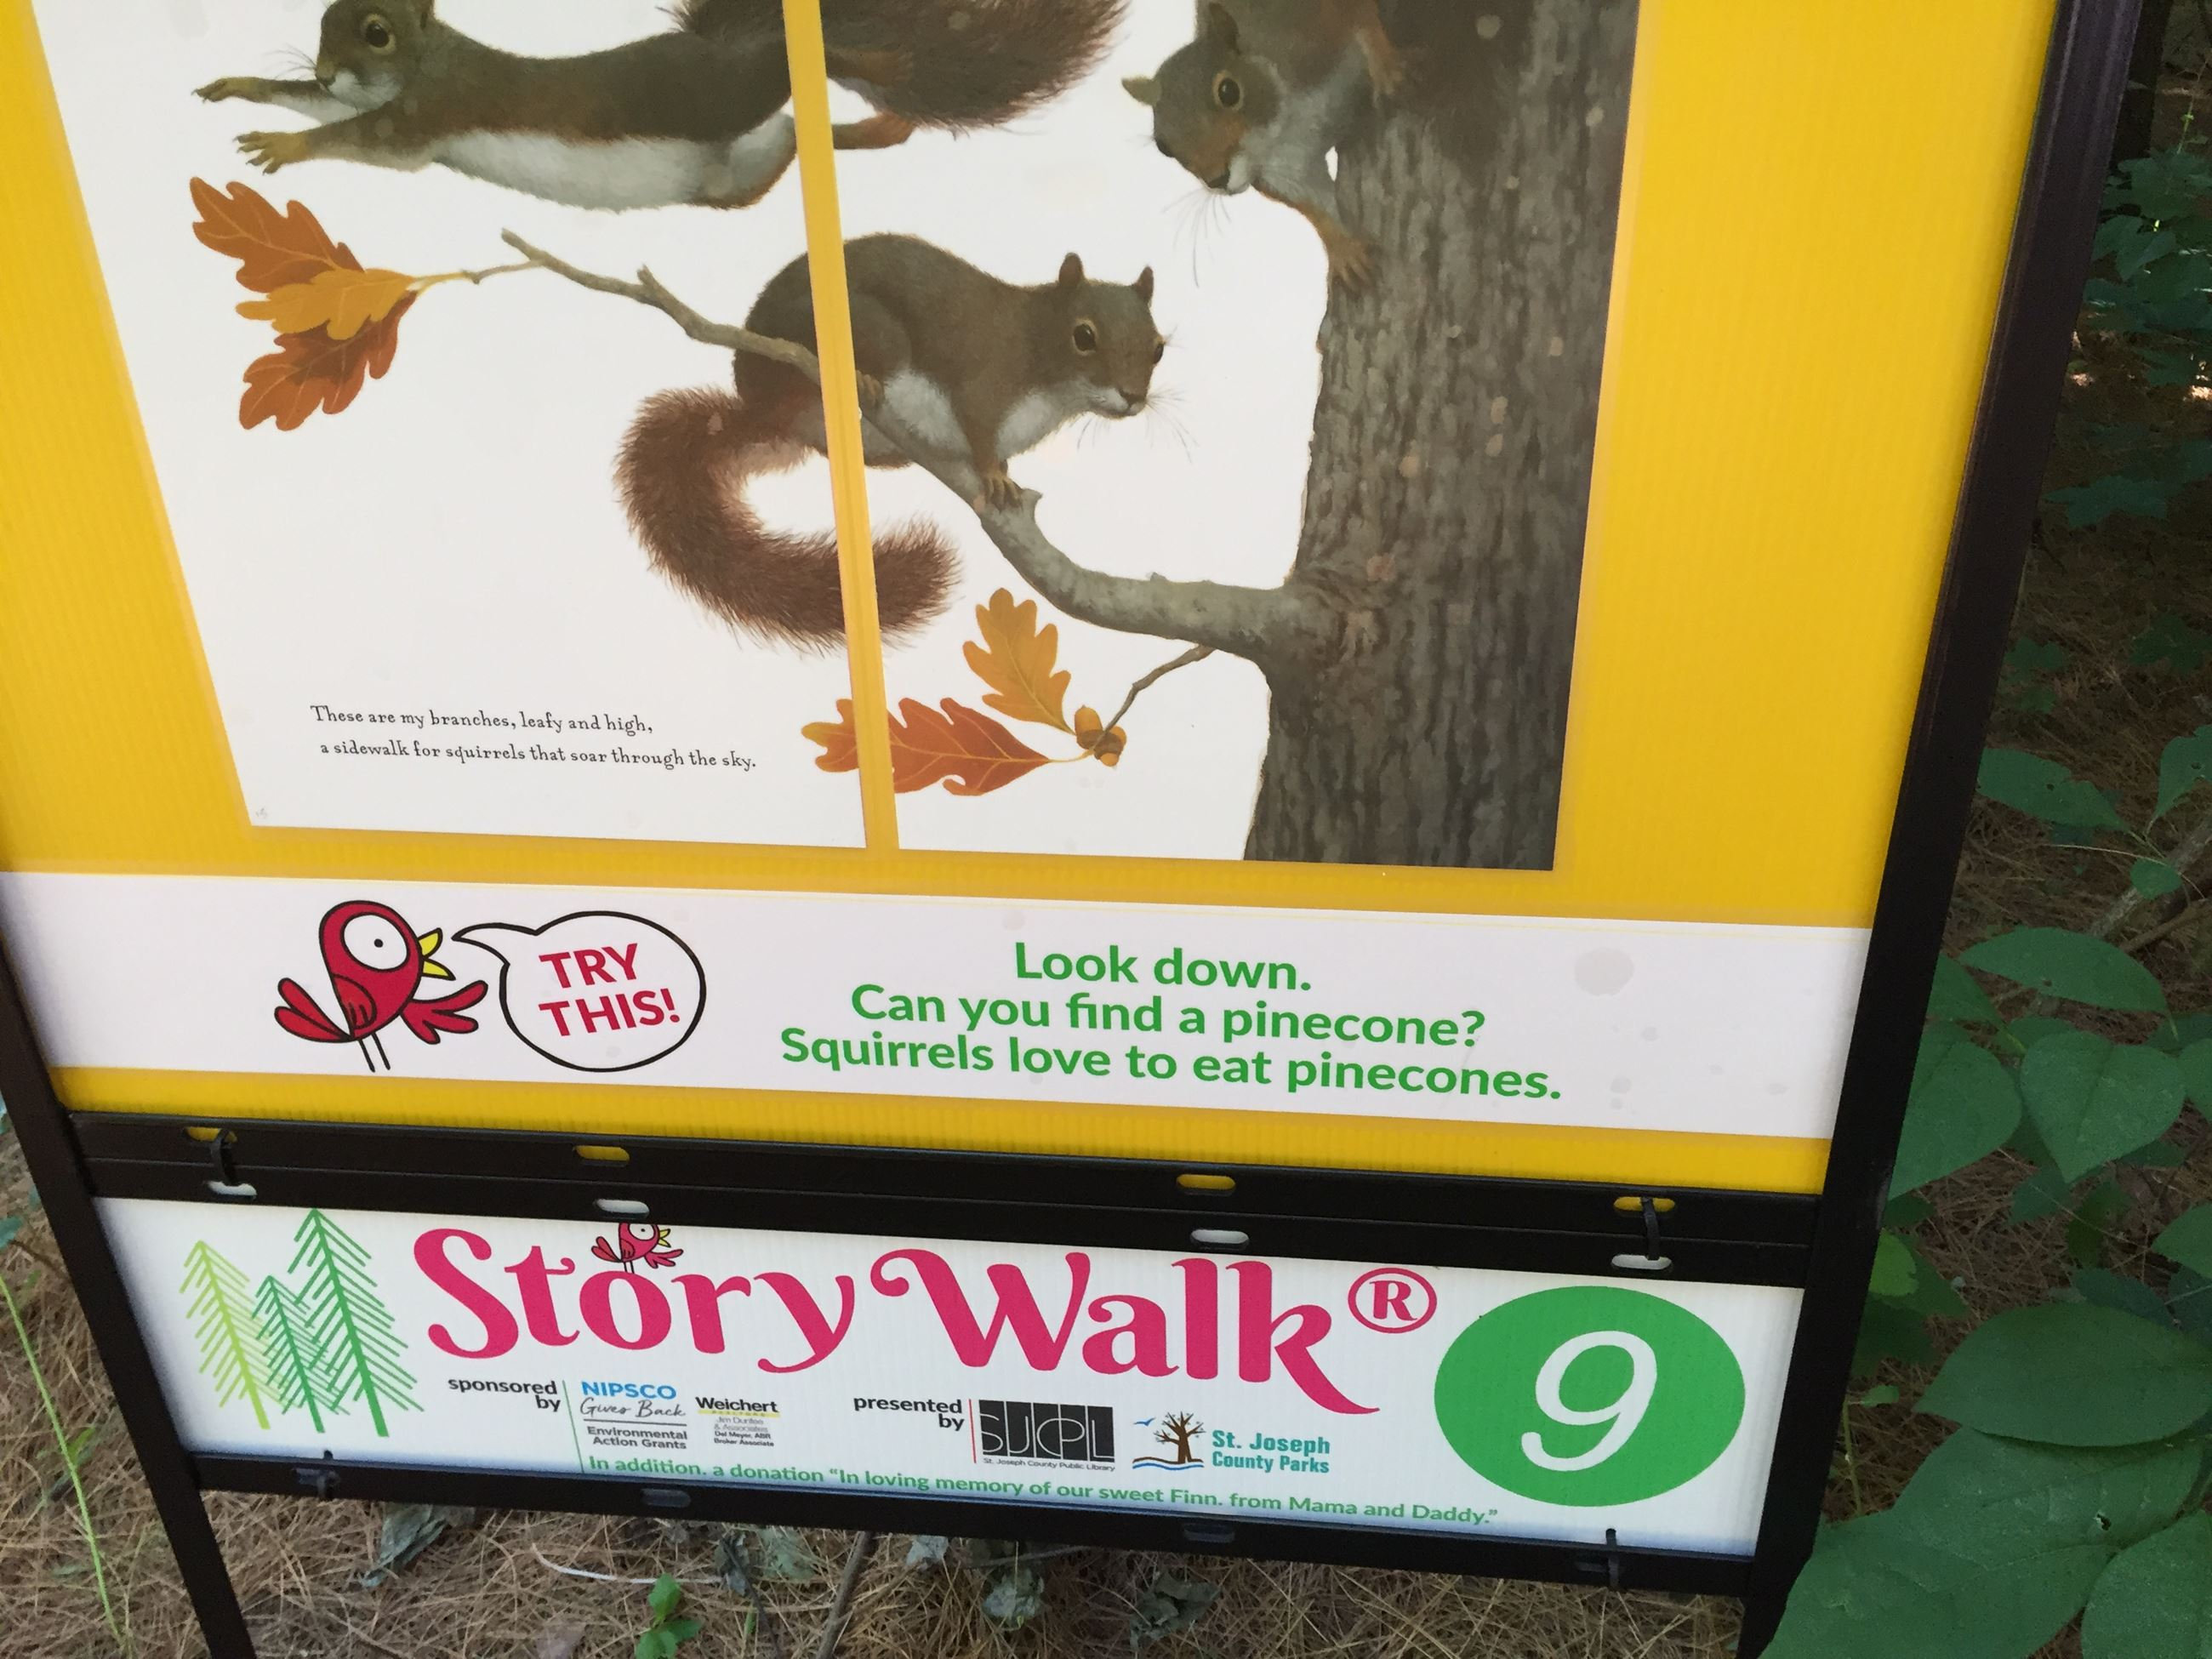 Some story pages along the walk include activities to try!